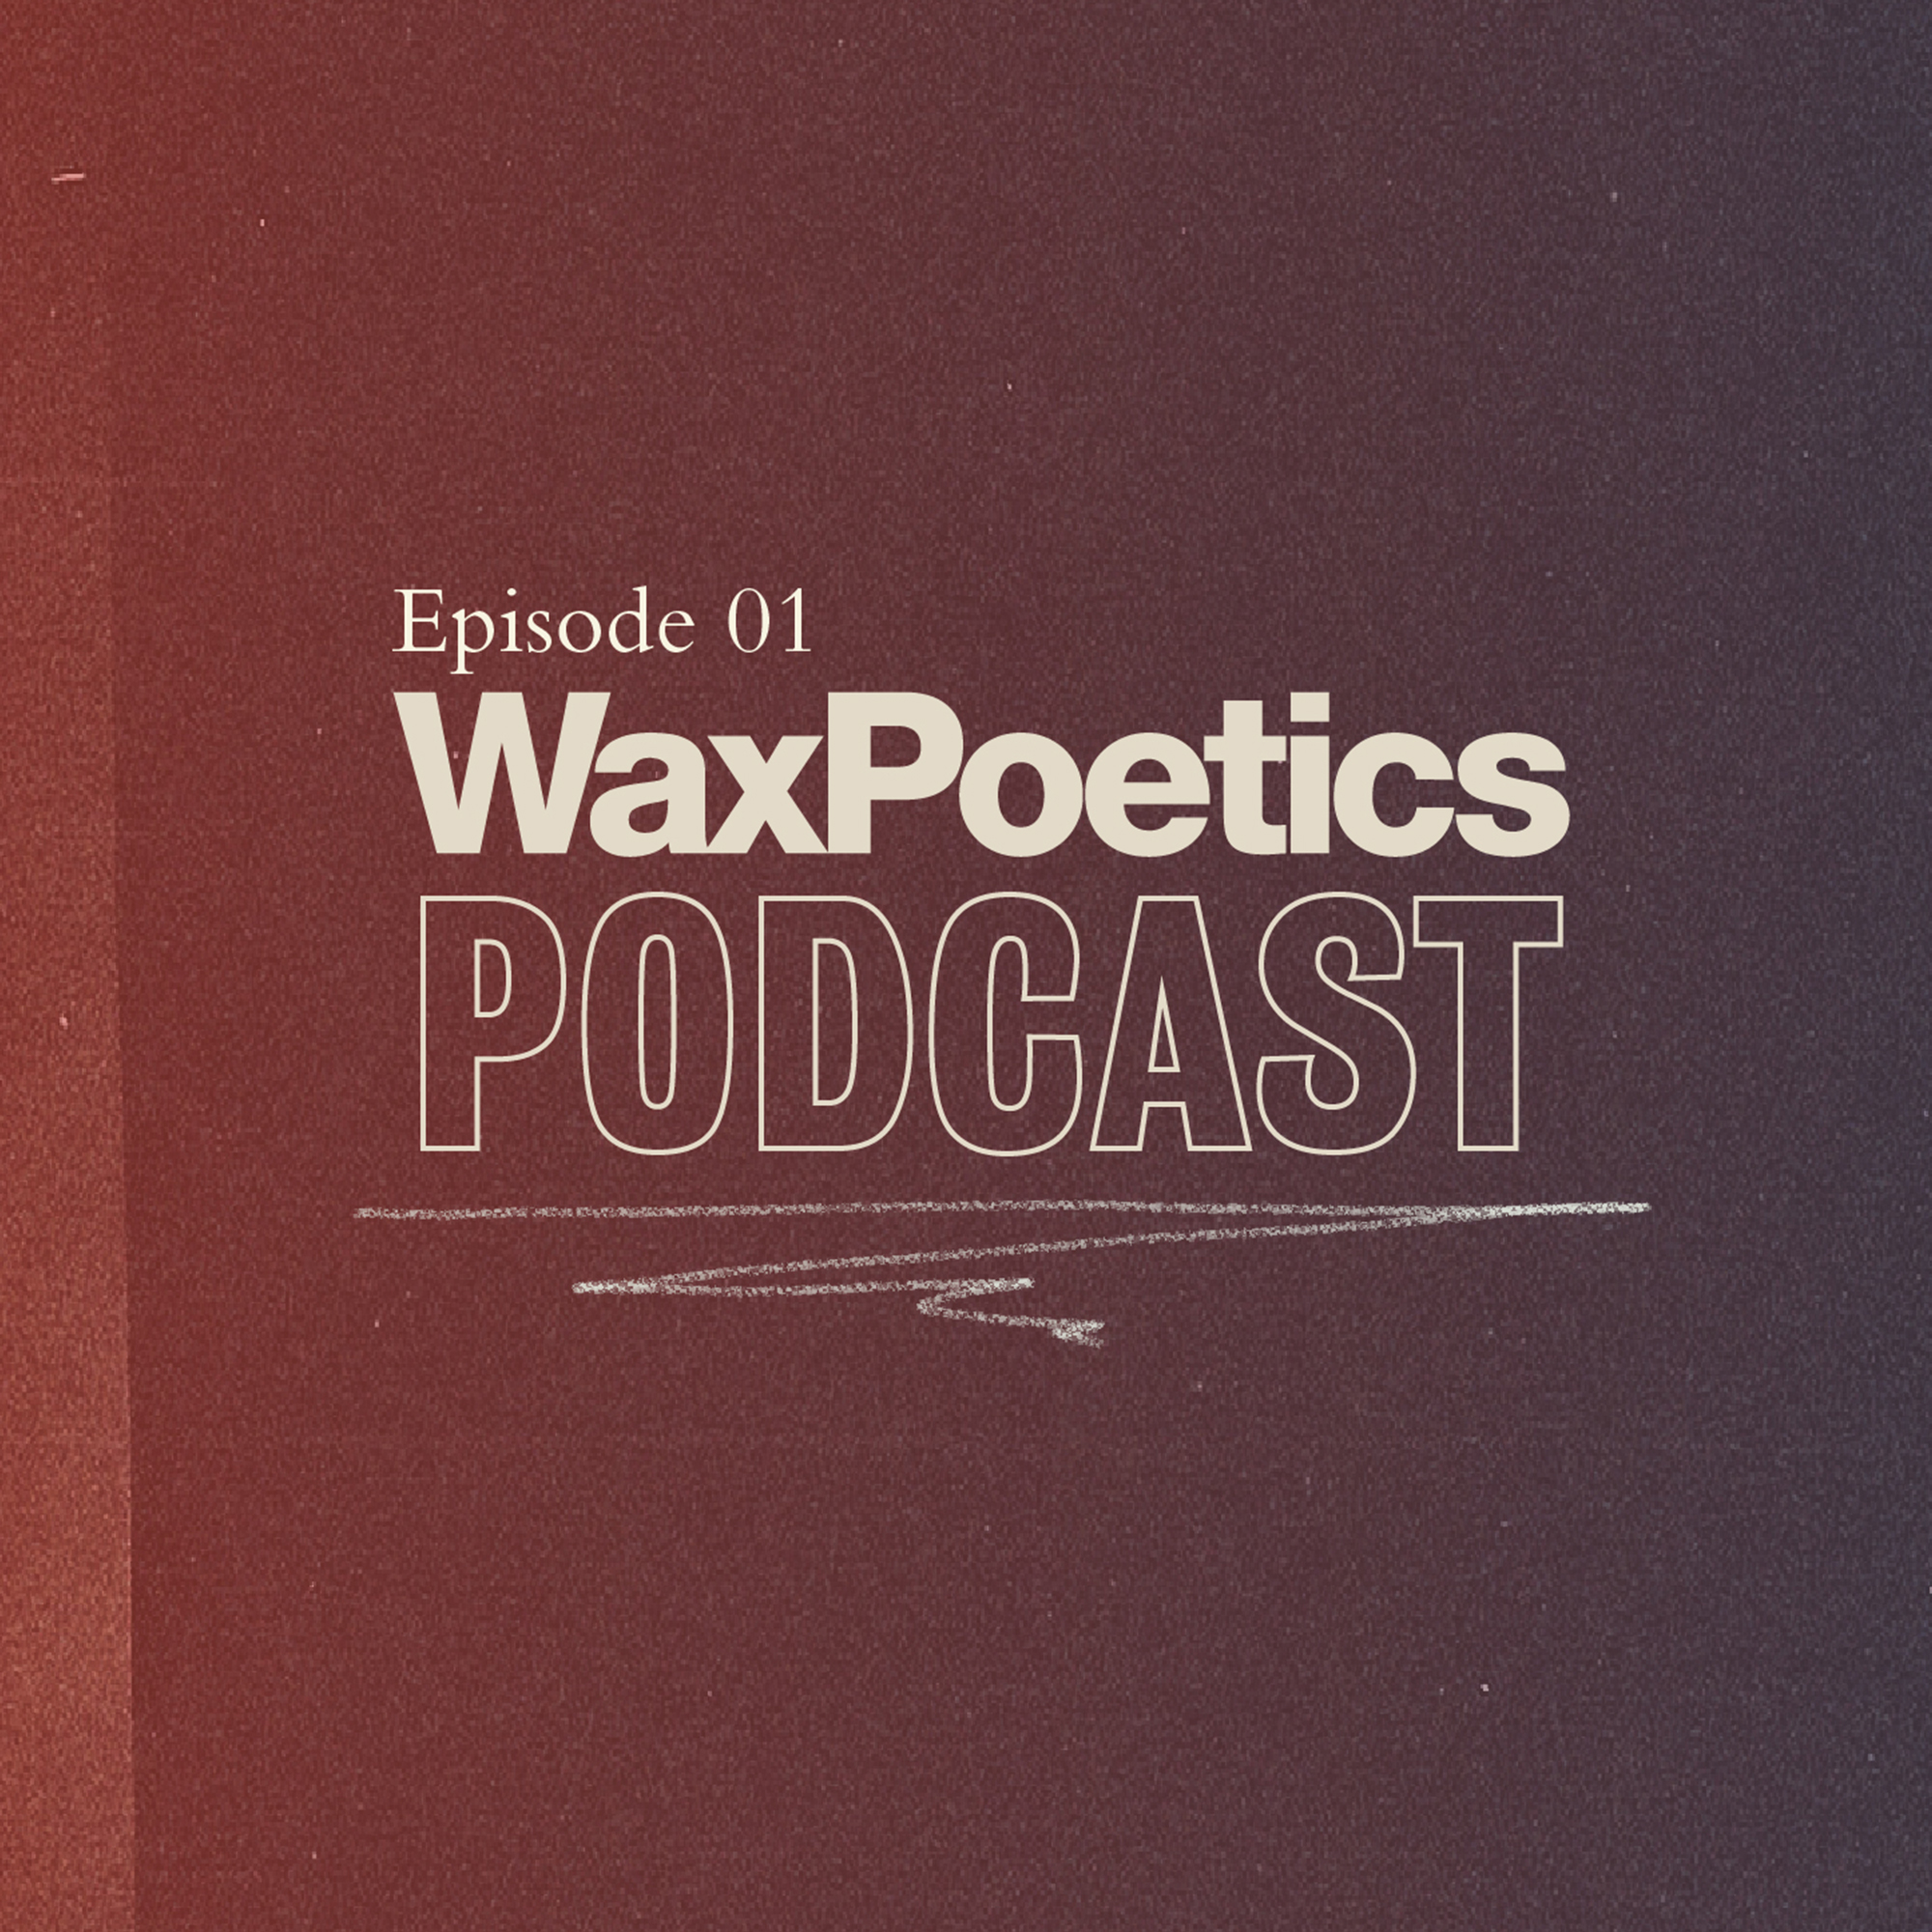 Wax Poetics Podcast: Episode 01